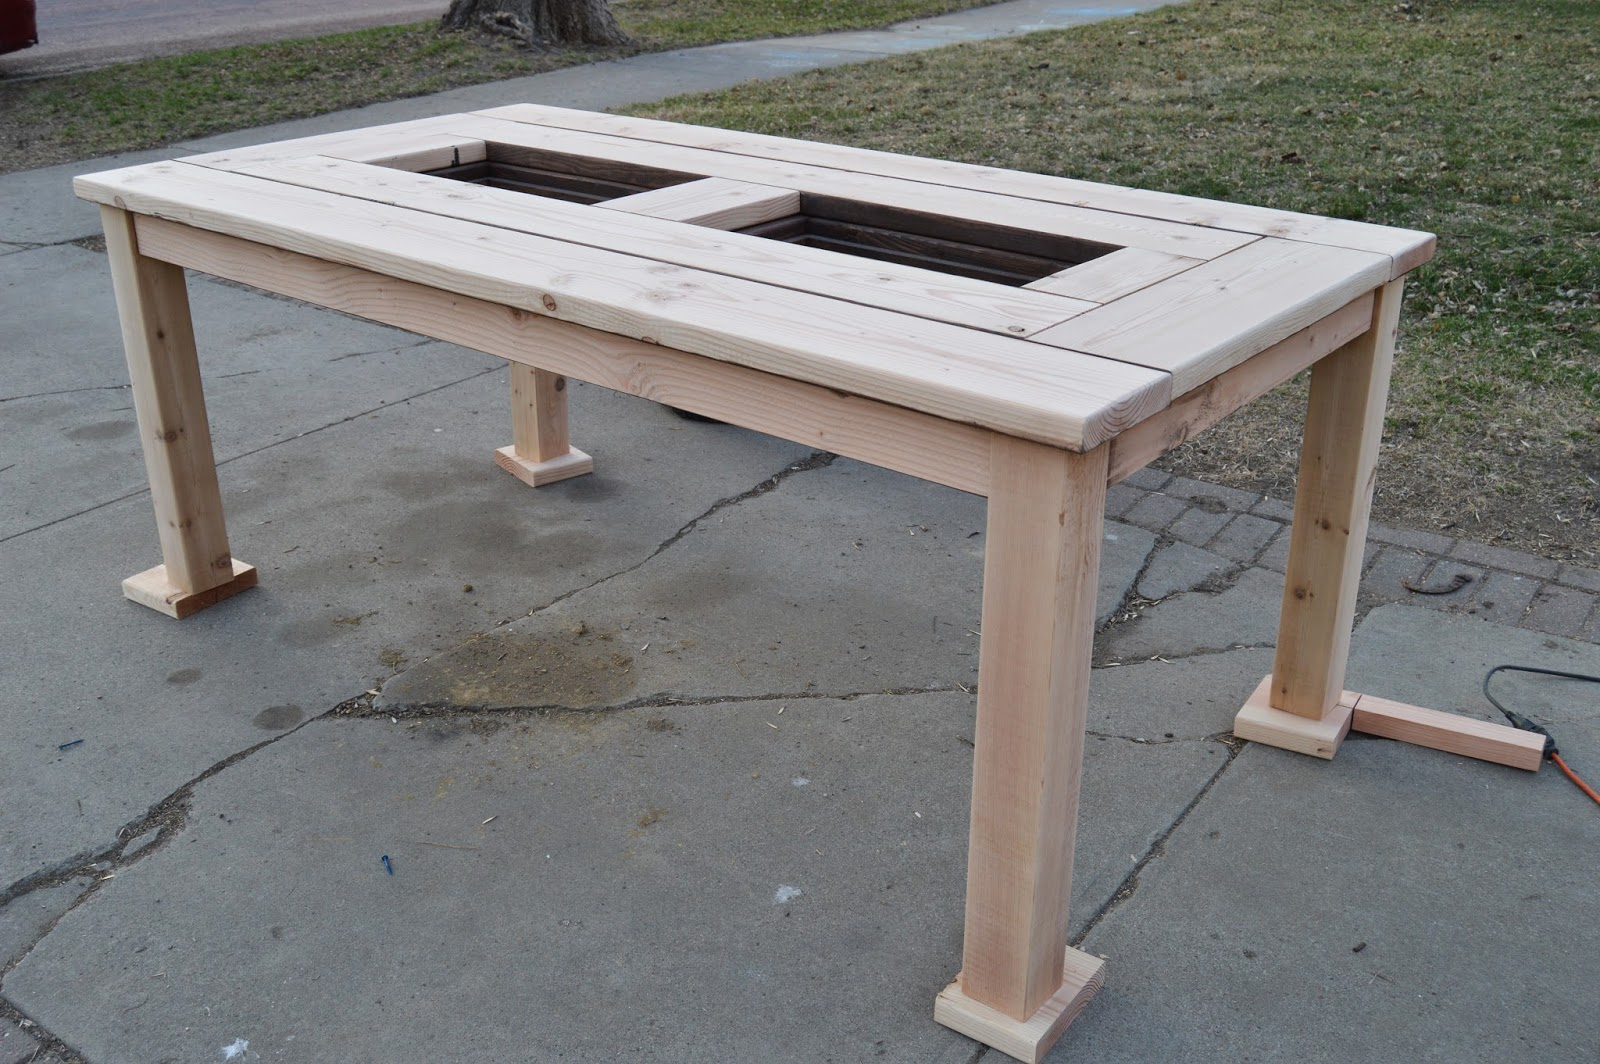 Remodelaholic | Build a Patio Table with Built-In Ice Boxes